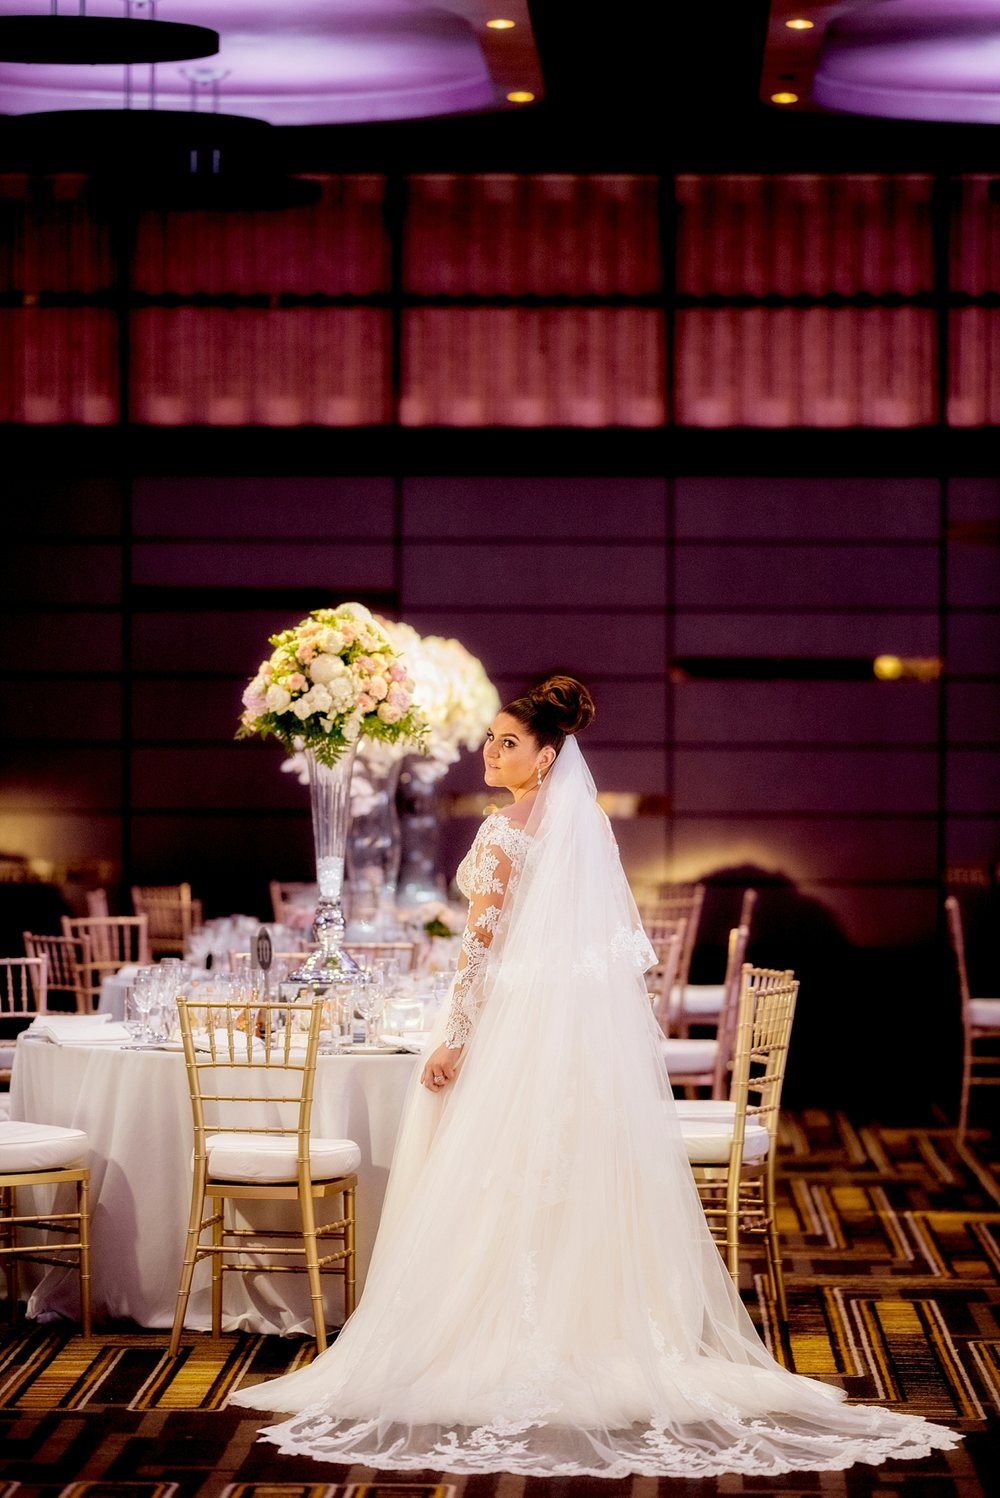 45 pan pacific italian wedding perth.JPG